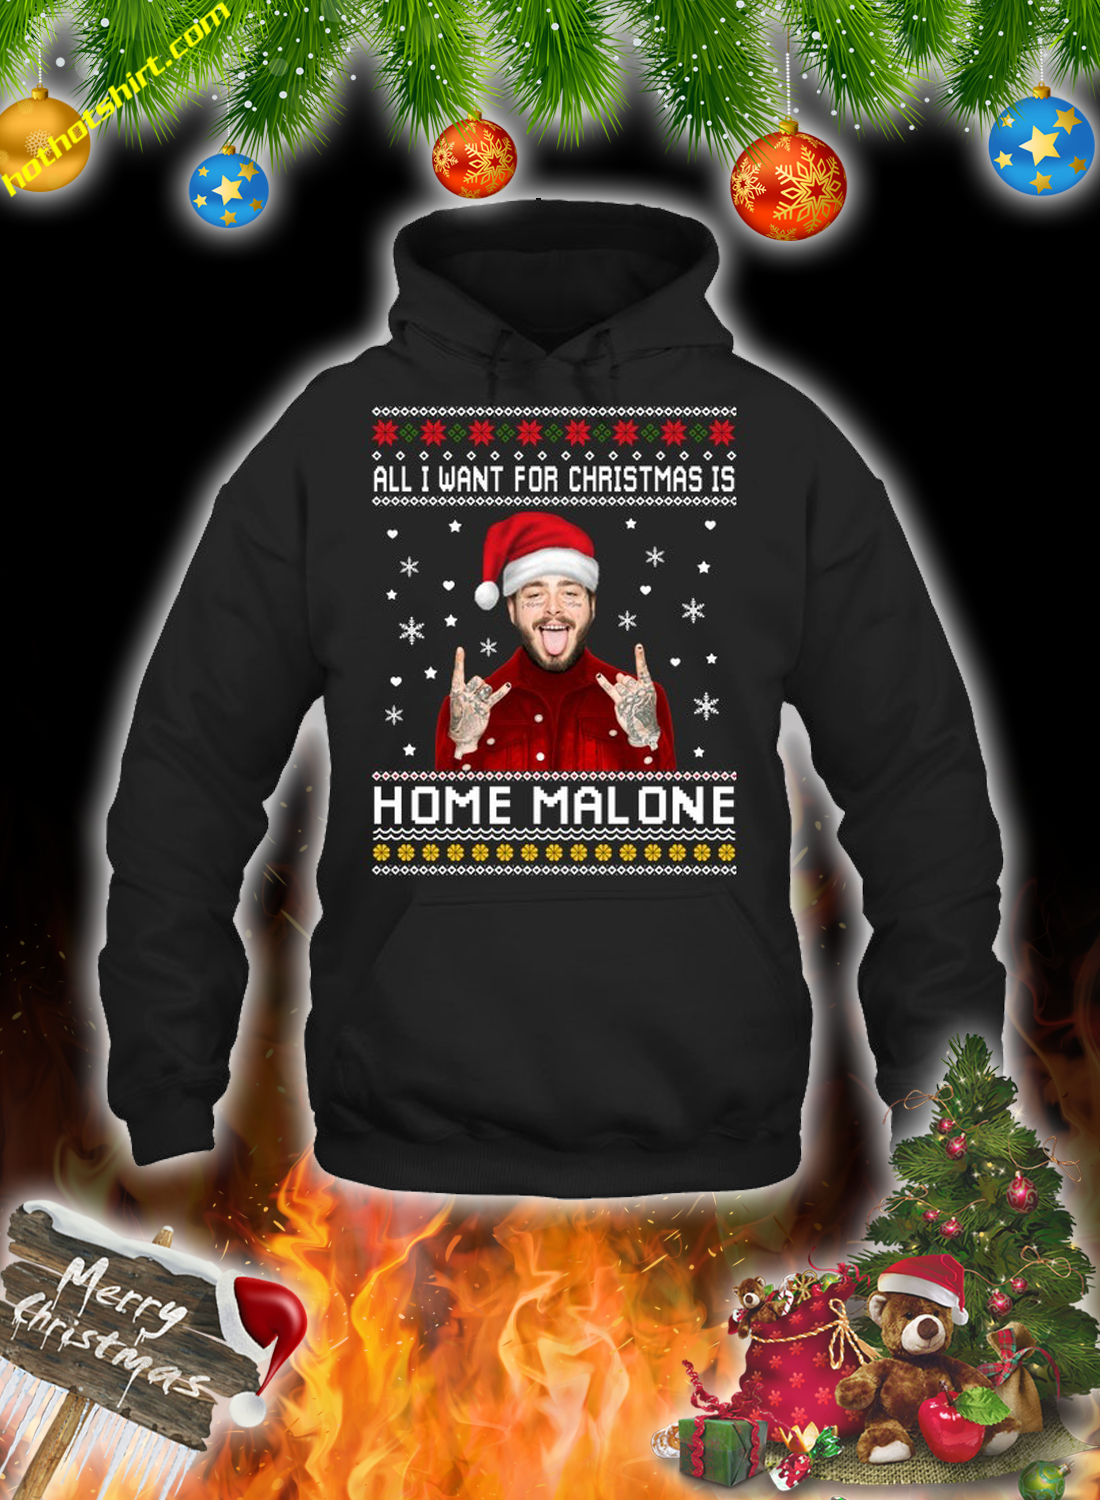 All i want for christmas is home malone christmas sweatshirt and jumper 1